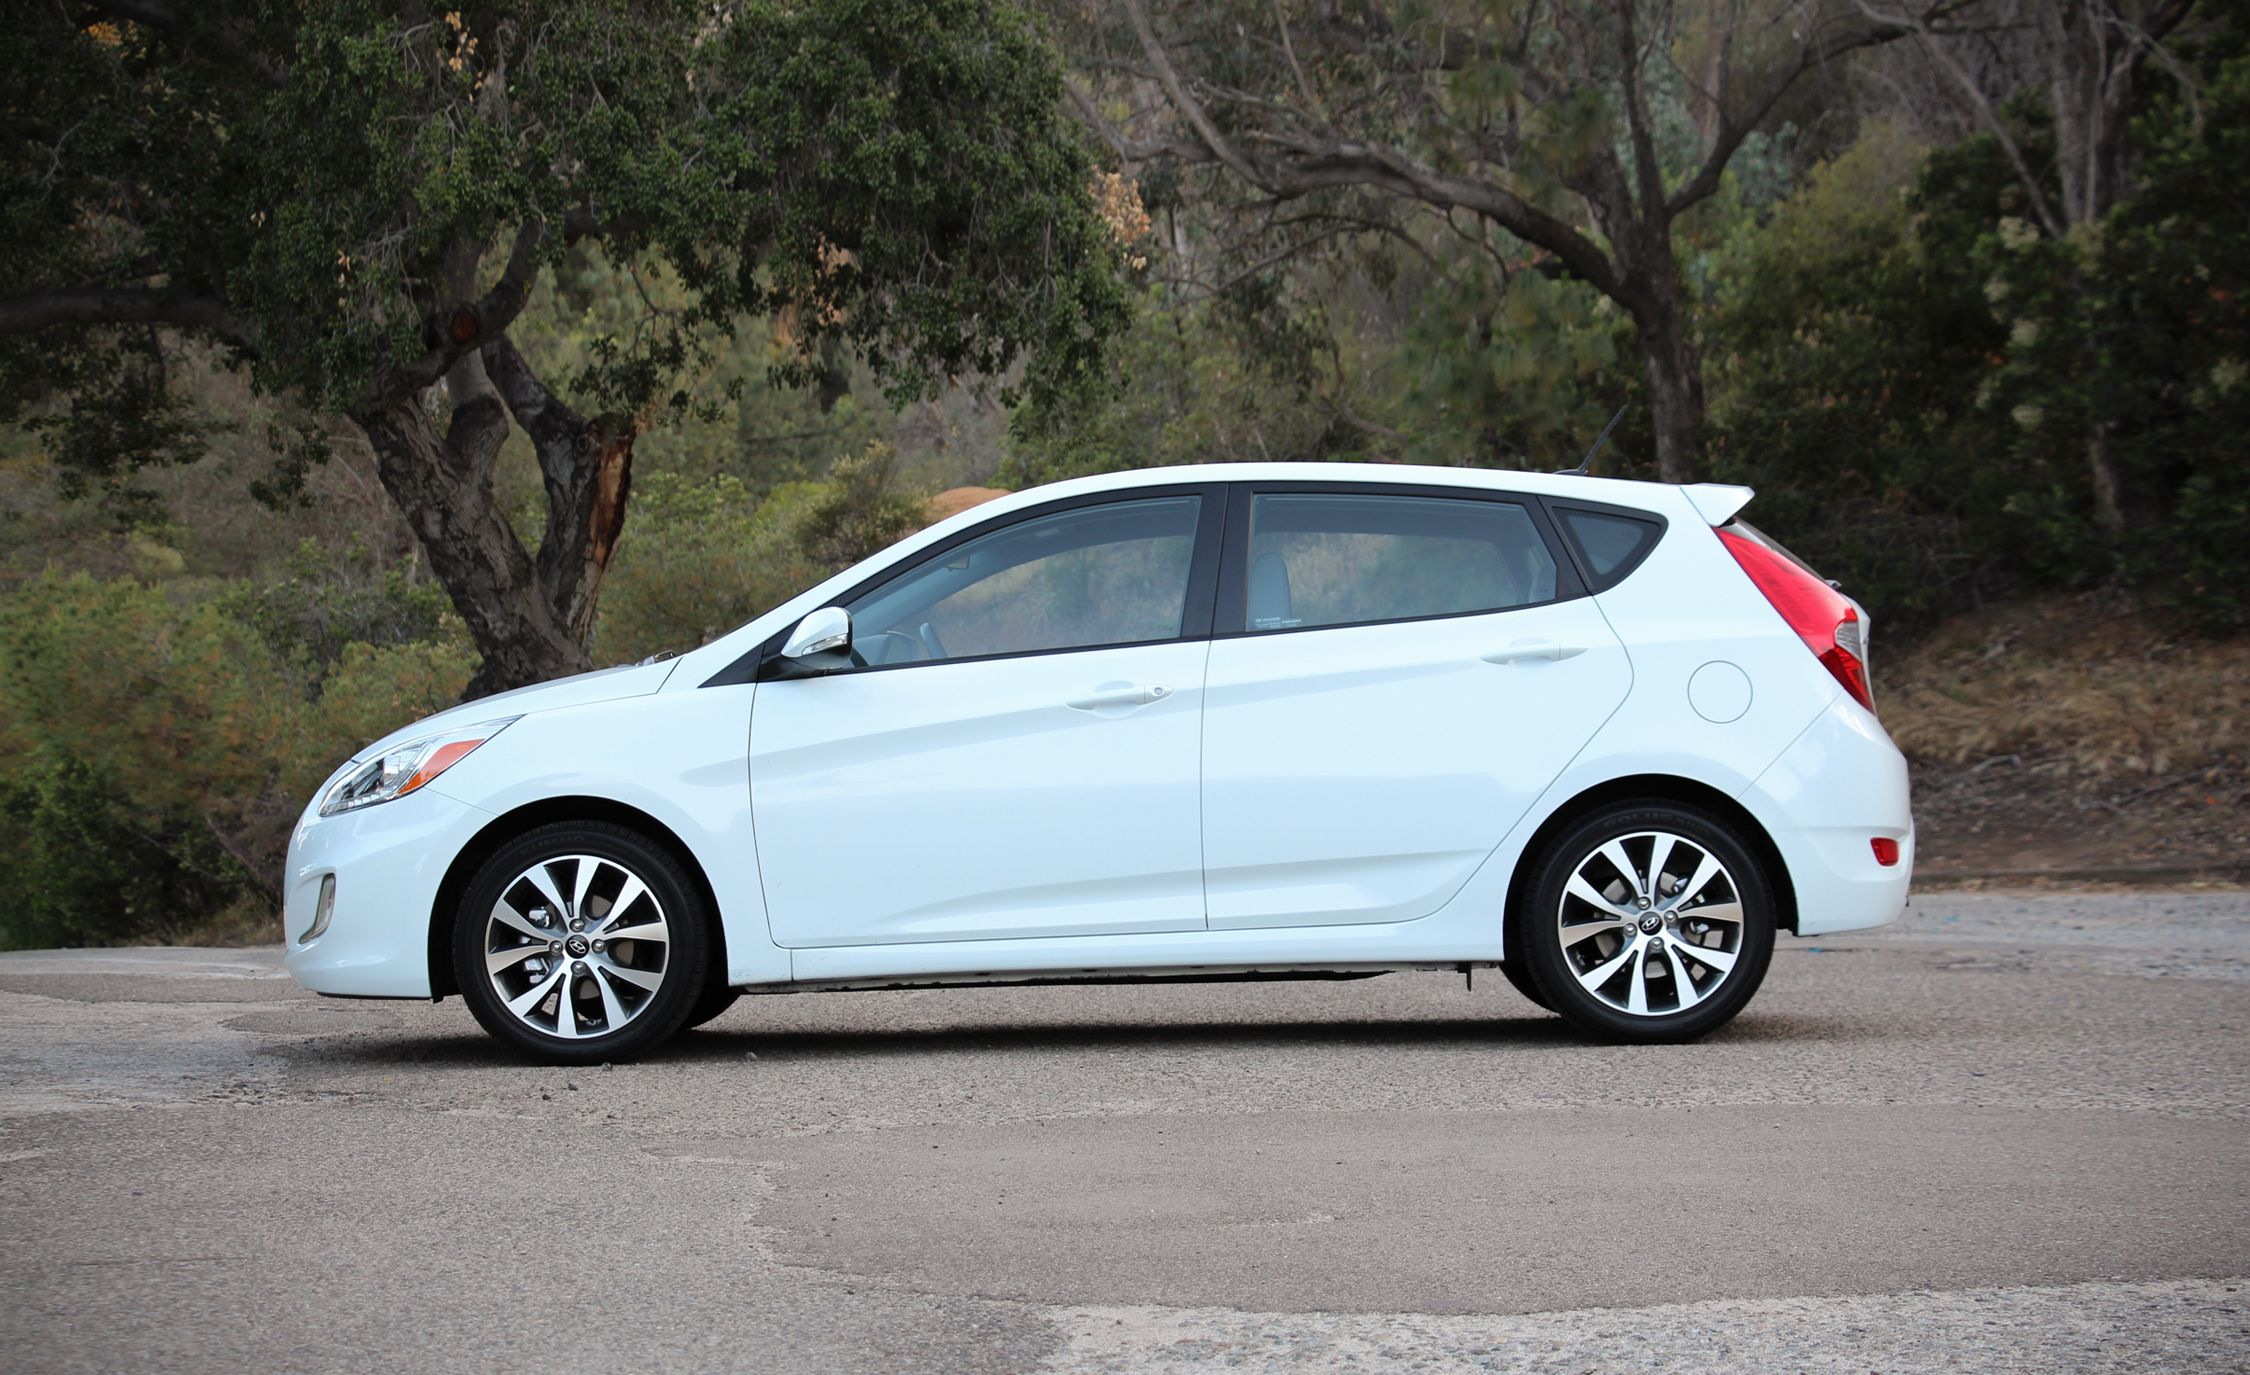 Hyundai Accent Hatchback >> 2016 Hyundai Accent Hatchback Pictures Photo Gallery Car And